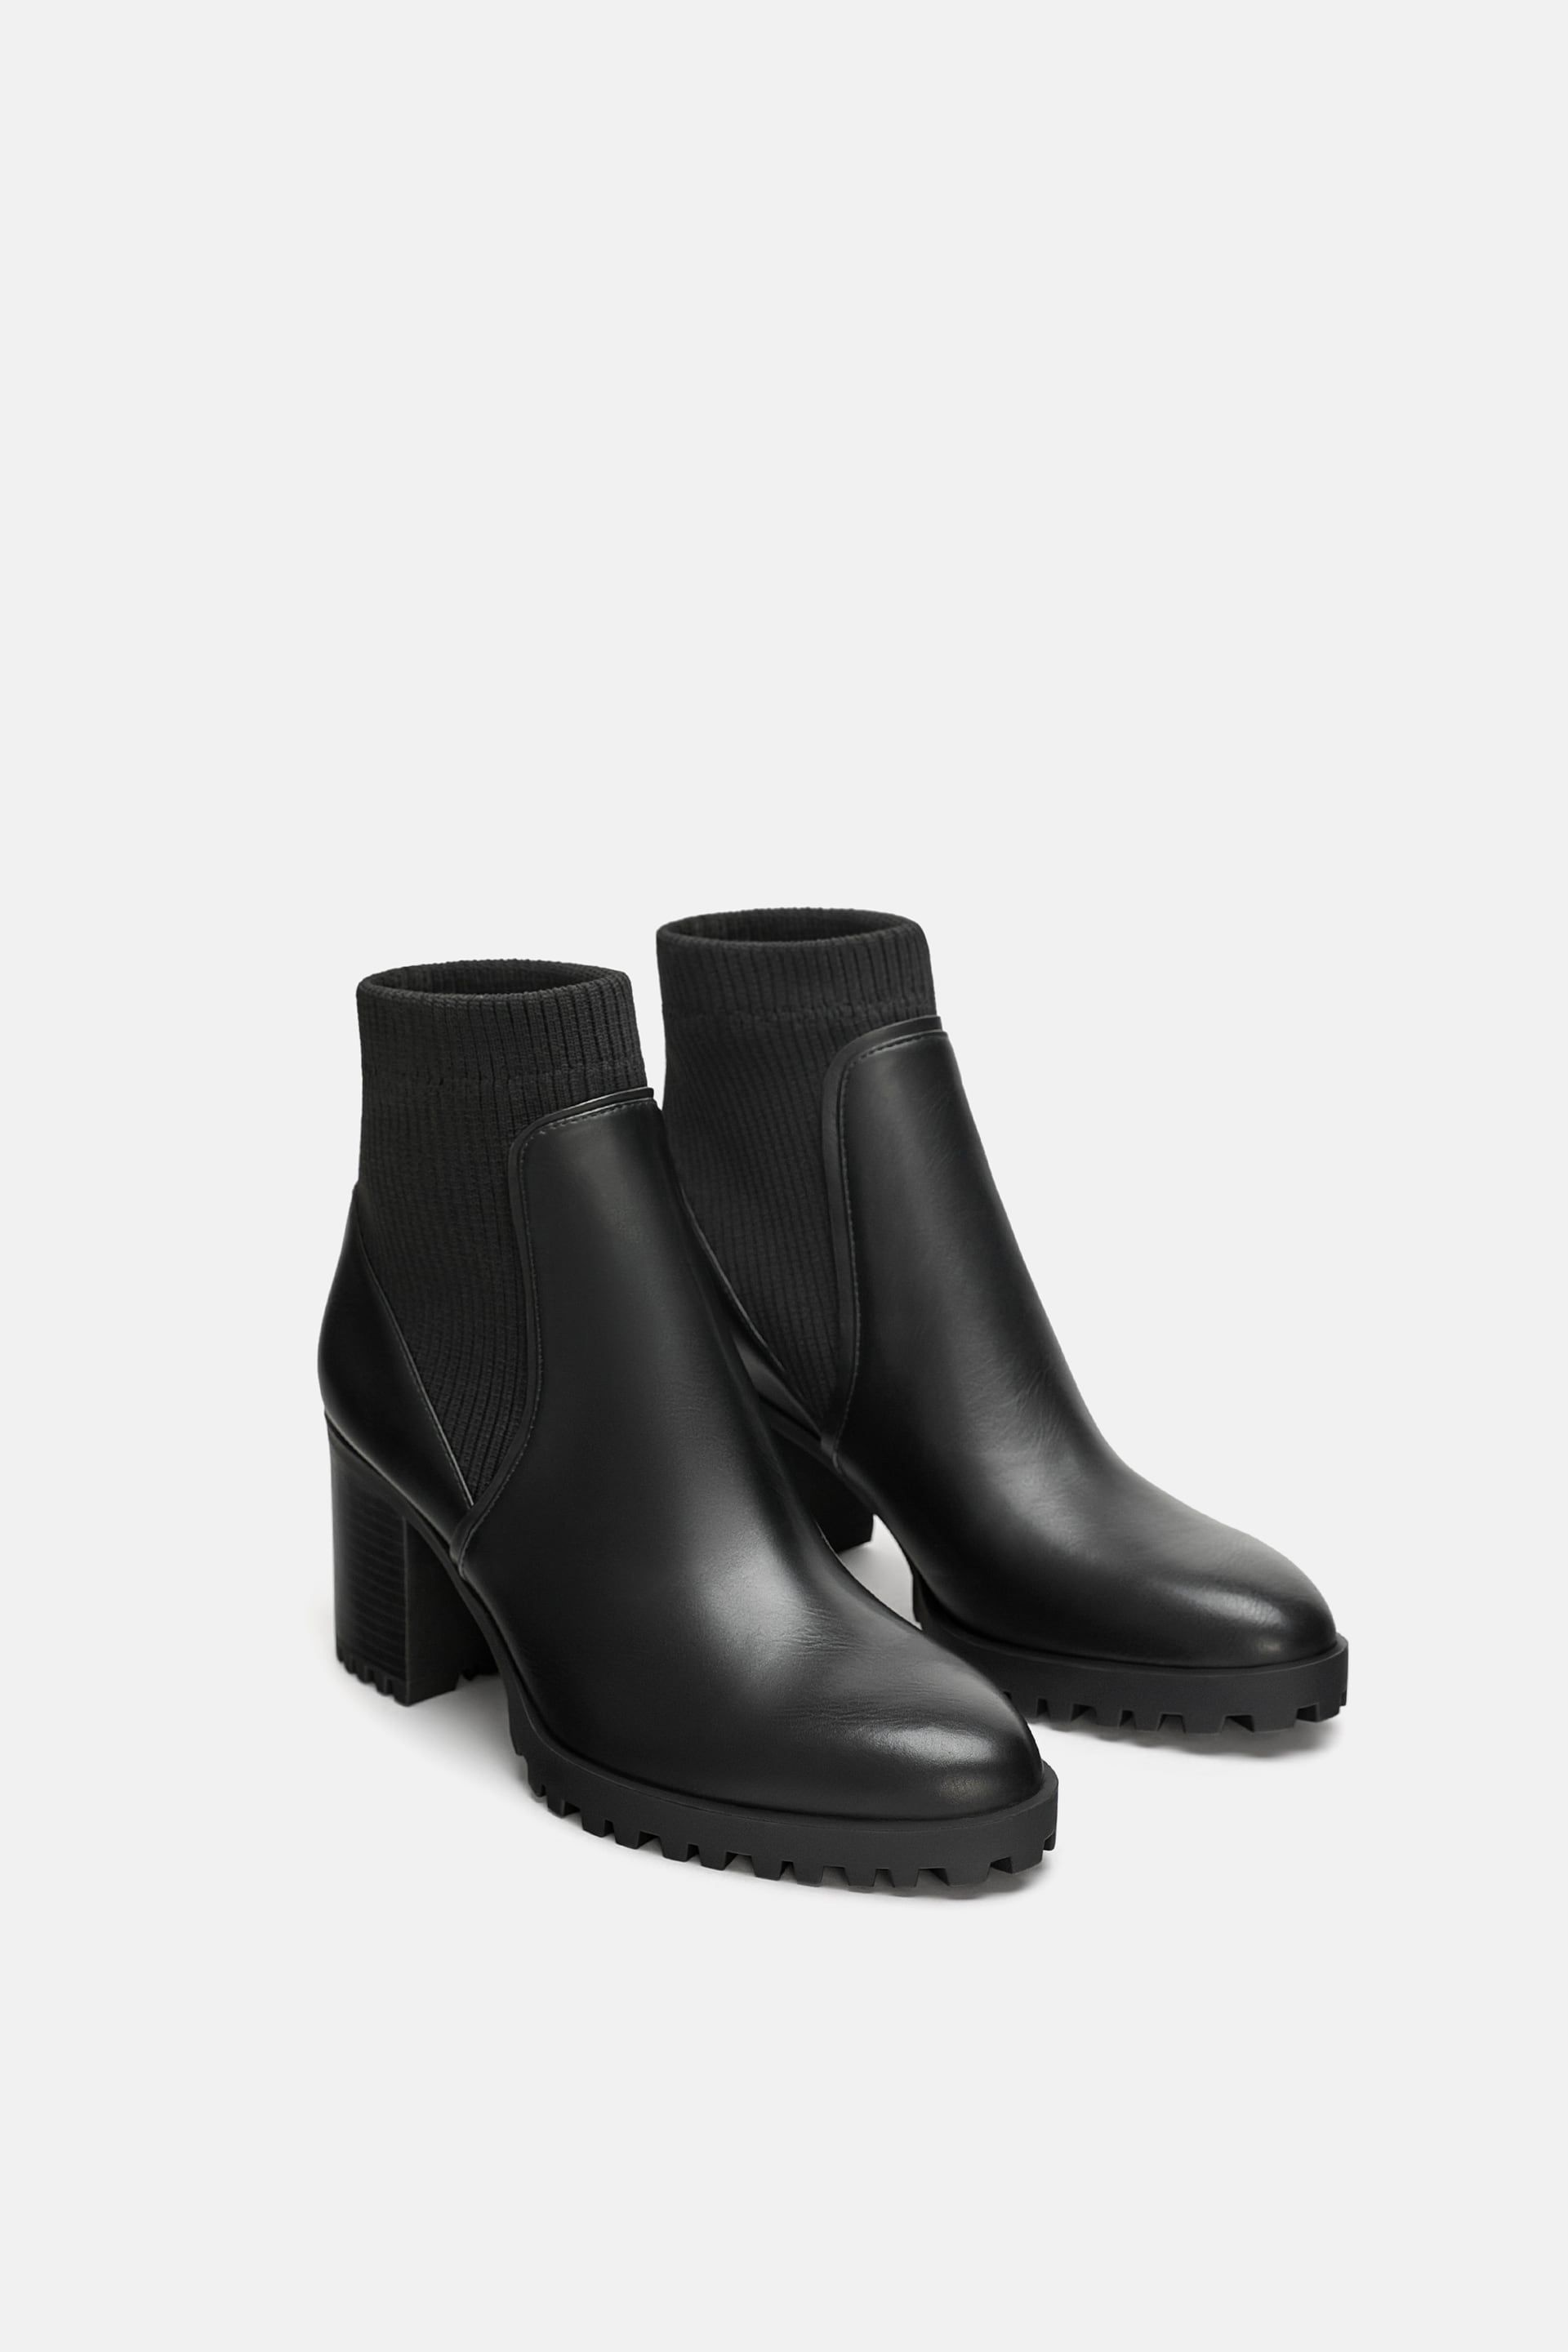 89271df75c41 Image 1 of SOCK STYLE HEELED ANKLE BOOTS WITH LUG SOLES from Zara